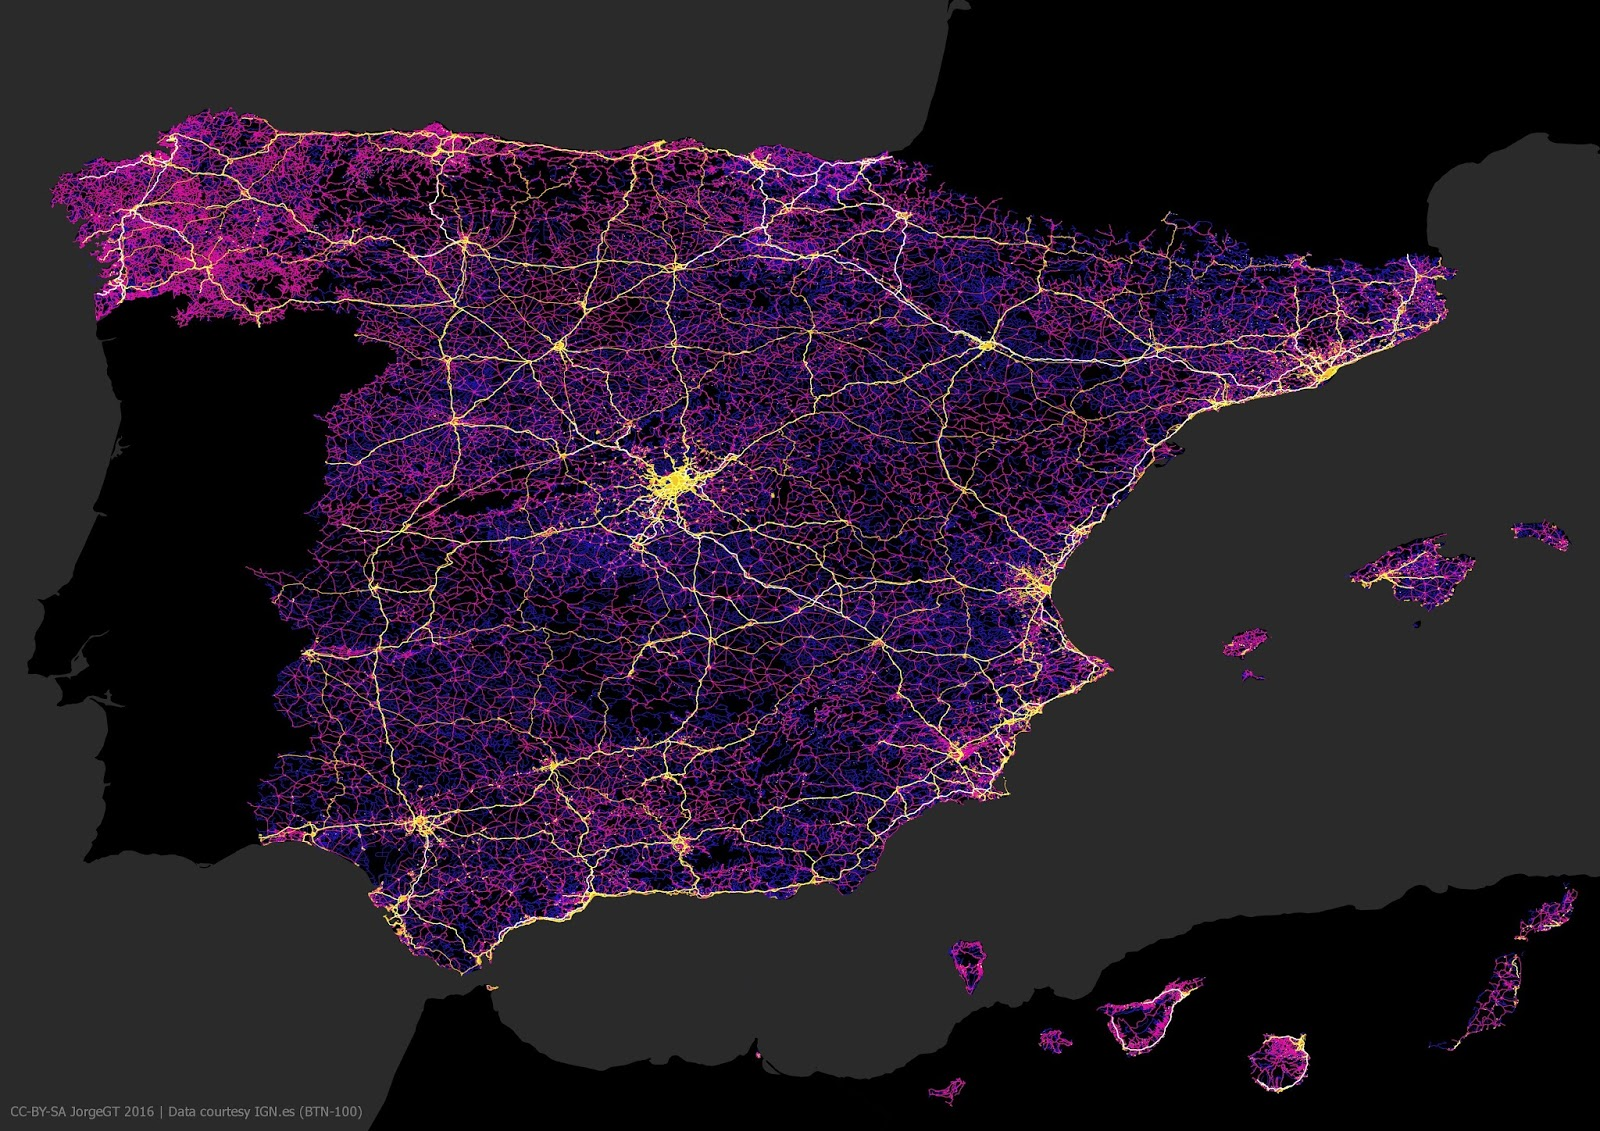 Spain mapped only by roads and highways